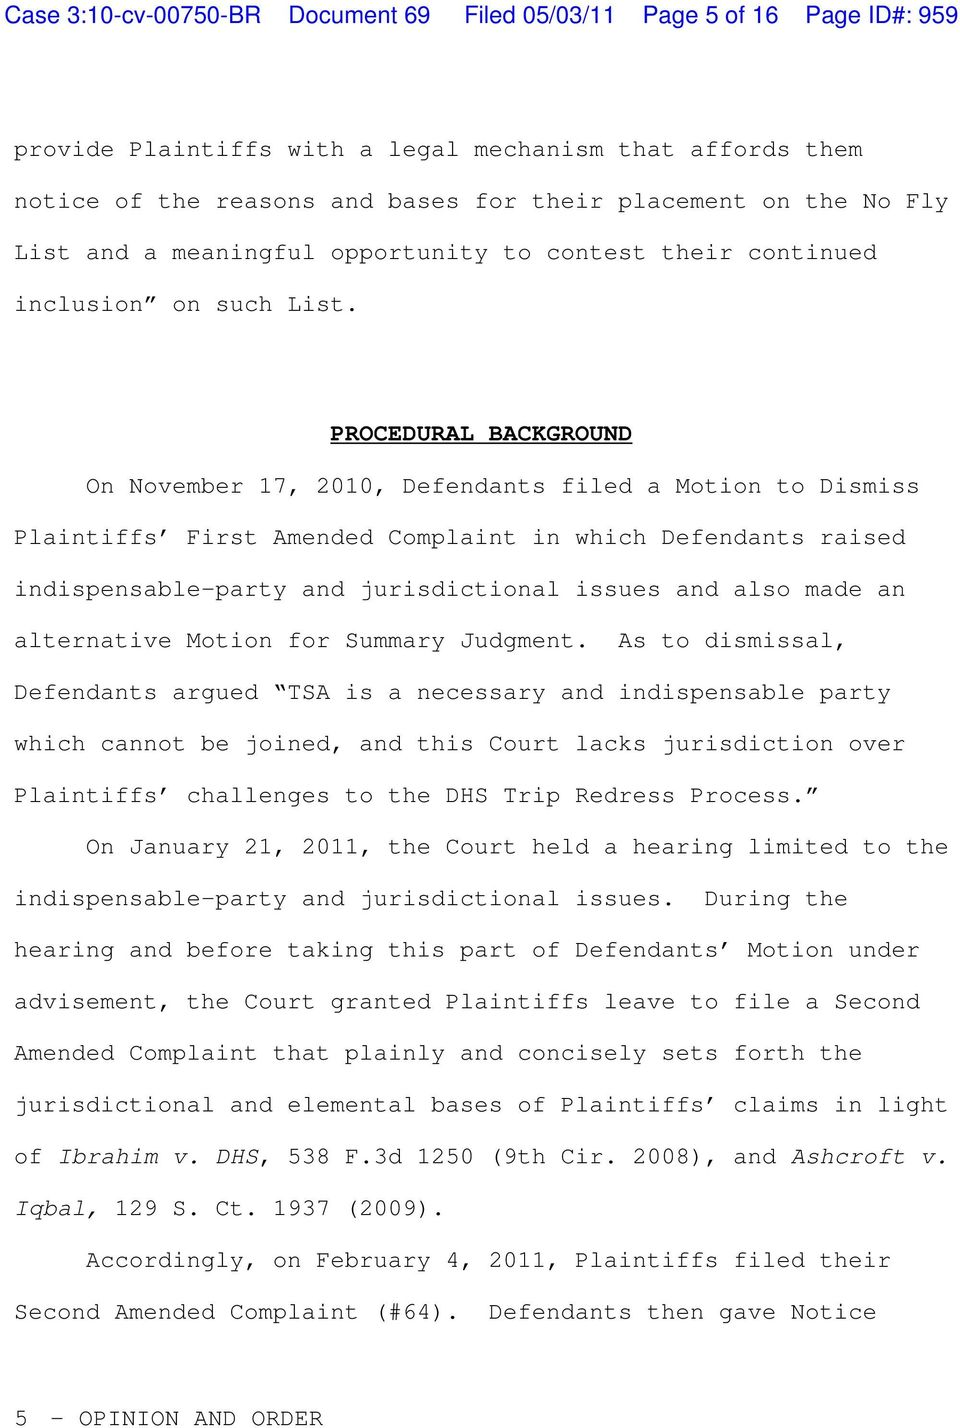 PROCEDURAL BACKGROUND On November 17, 2010, Defendants filed a Motion to Dismiss Plaintiffs First Amended Complaint in which Defendants raised indispensable-party and jurisdictional issues and also